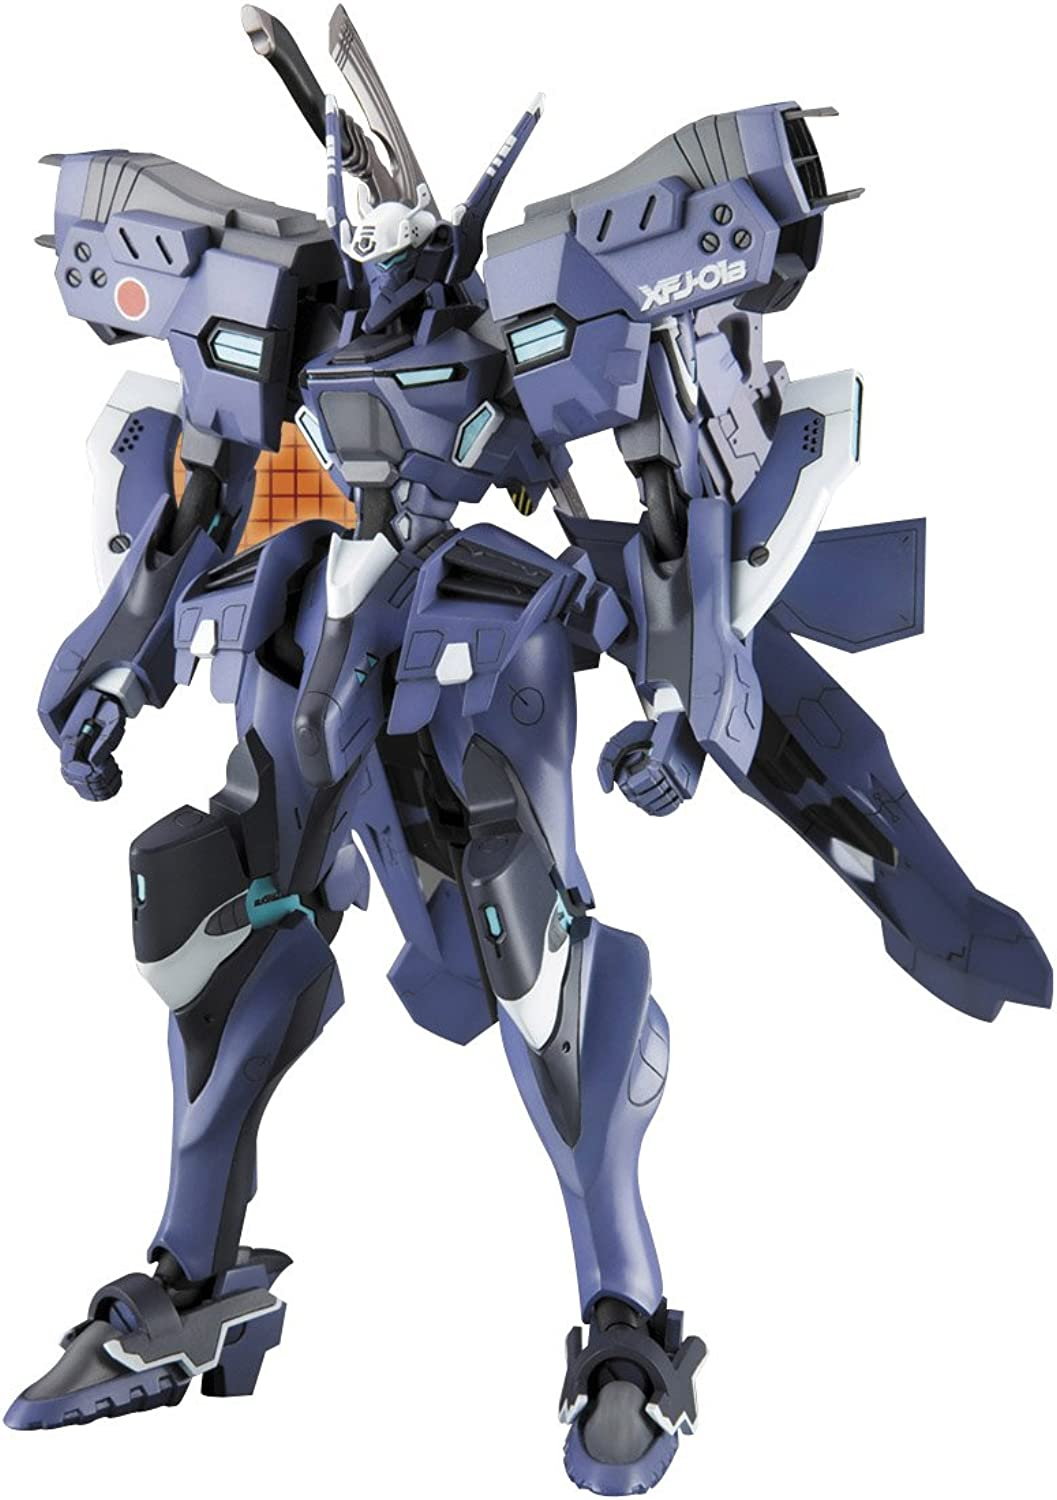 DX Deluxe MS IN ACTION   RX-93 Gundam (japan import)